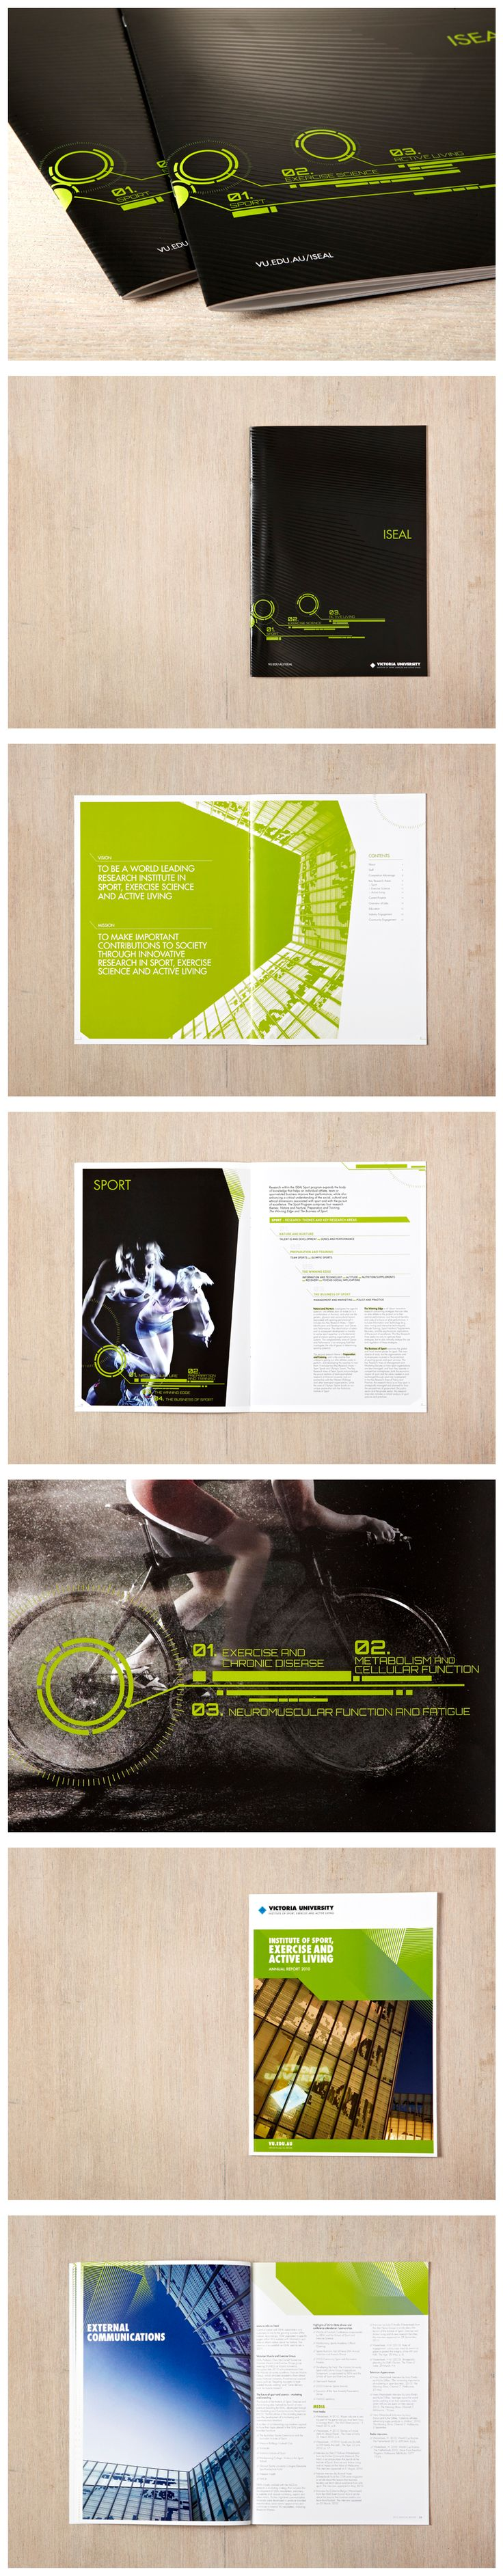 ISEAL's mission is to be a world-leading sports research institute, but their branding and marketing material were looking decidedly unsophisticated. Liquid's brief was to turn that perception around and help ISEAL project their state of the art research and technology. Liquid injected energy into a new design for ISEAL's printed material, collaborating with the institute's leaders to build a marketing platform that communicated the strength of their research to industry.